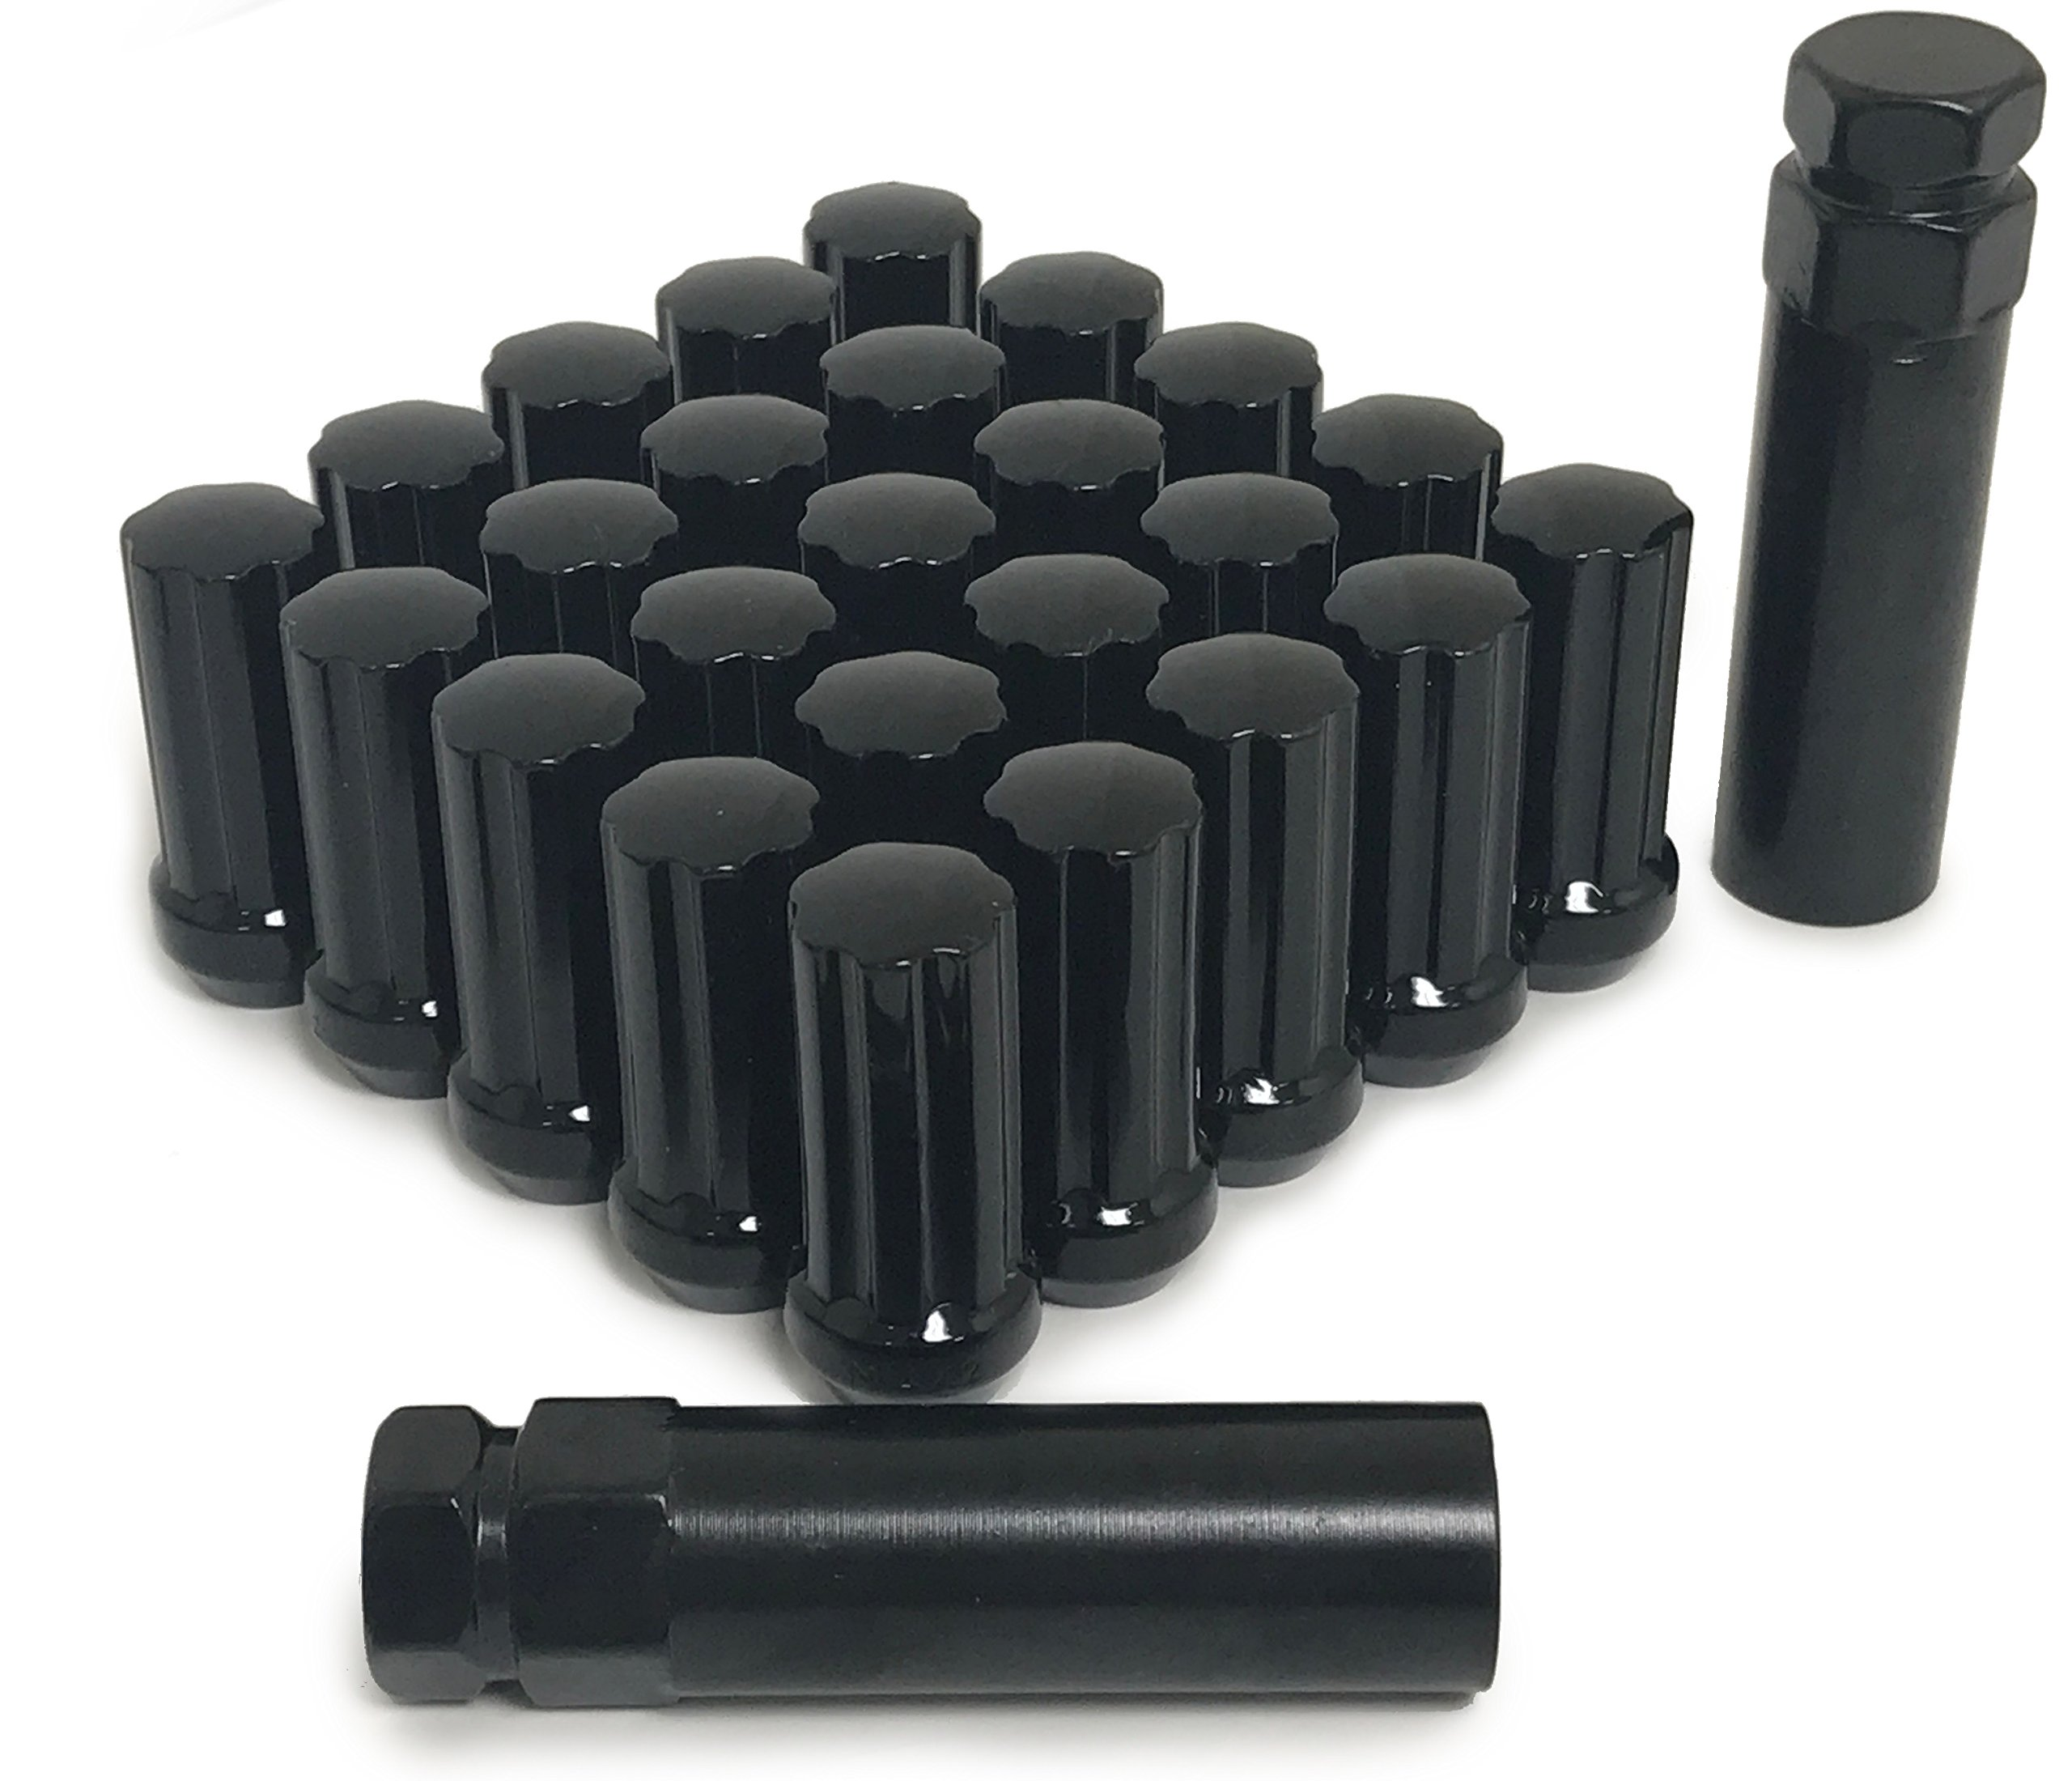 20 BLACK SPLINE LUG NUTS | 14X1.5 | 2 KEYS!